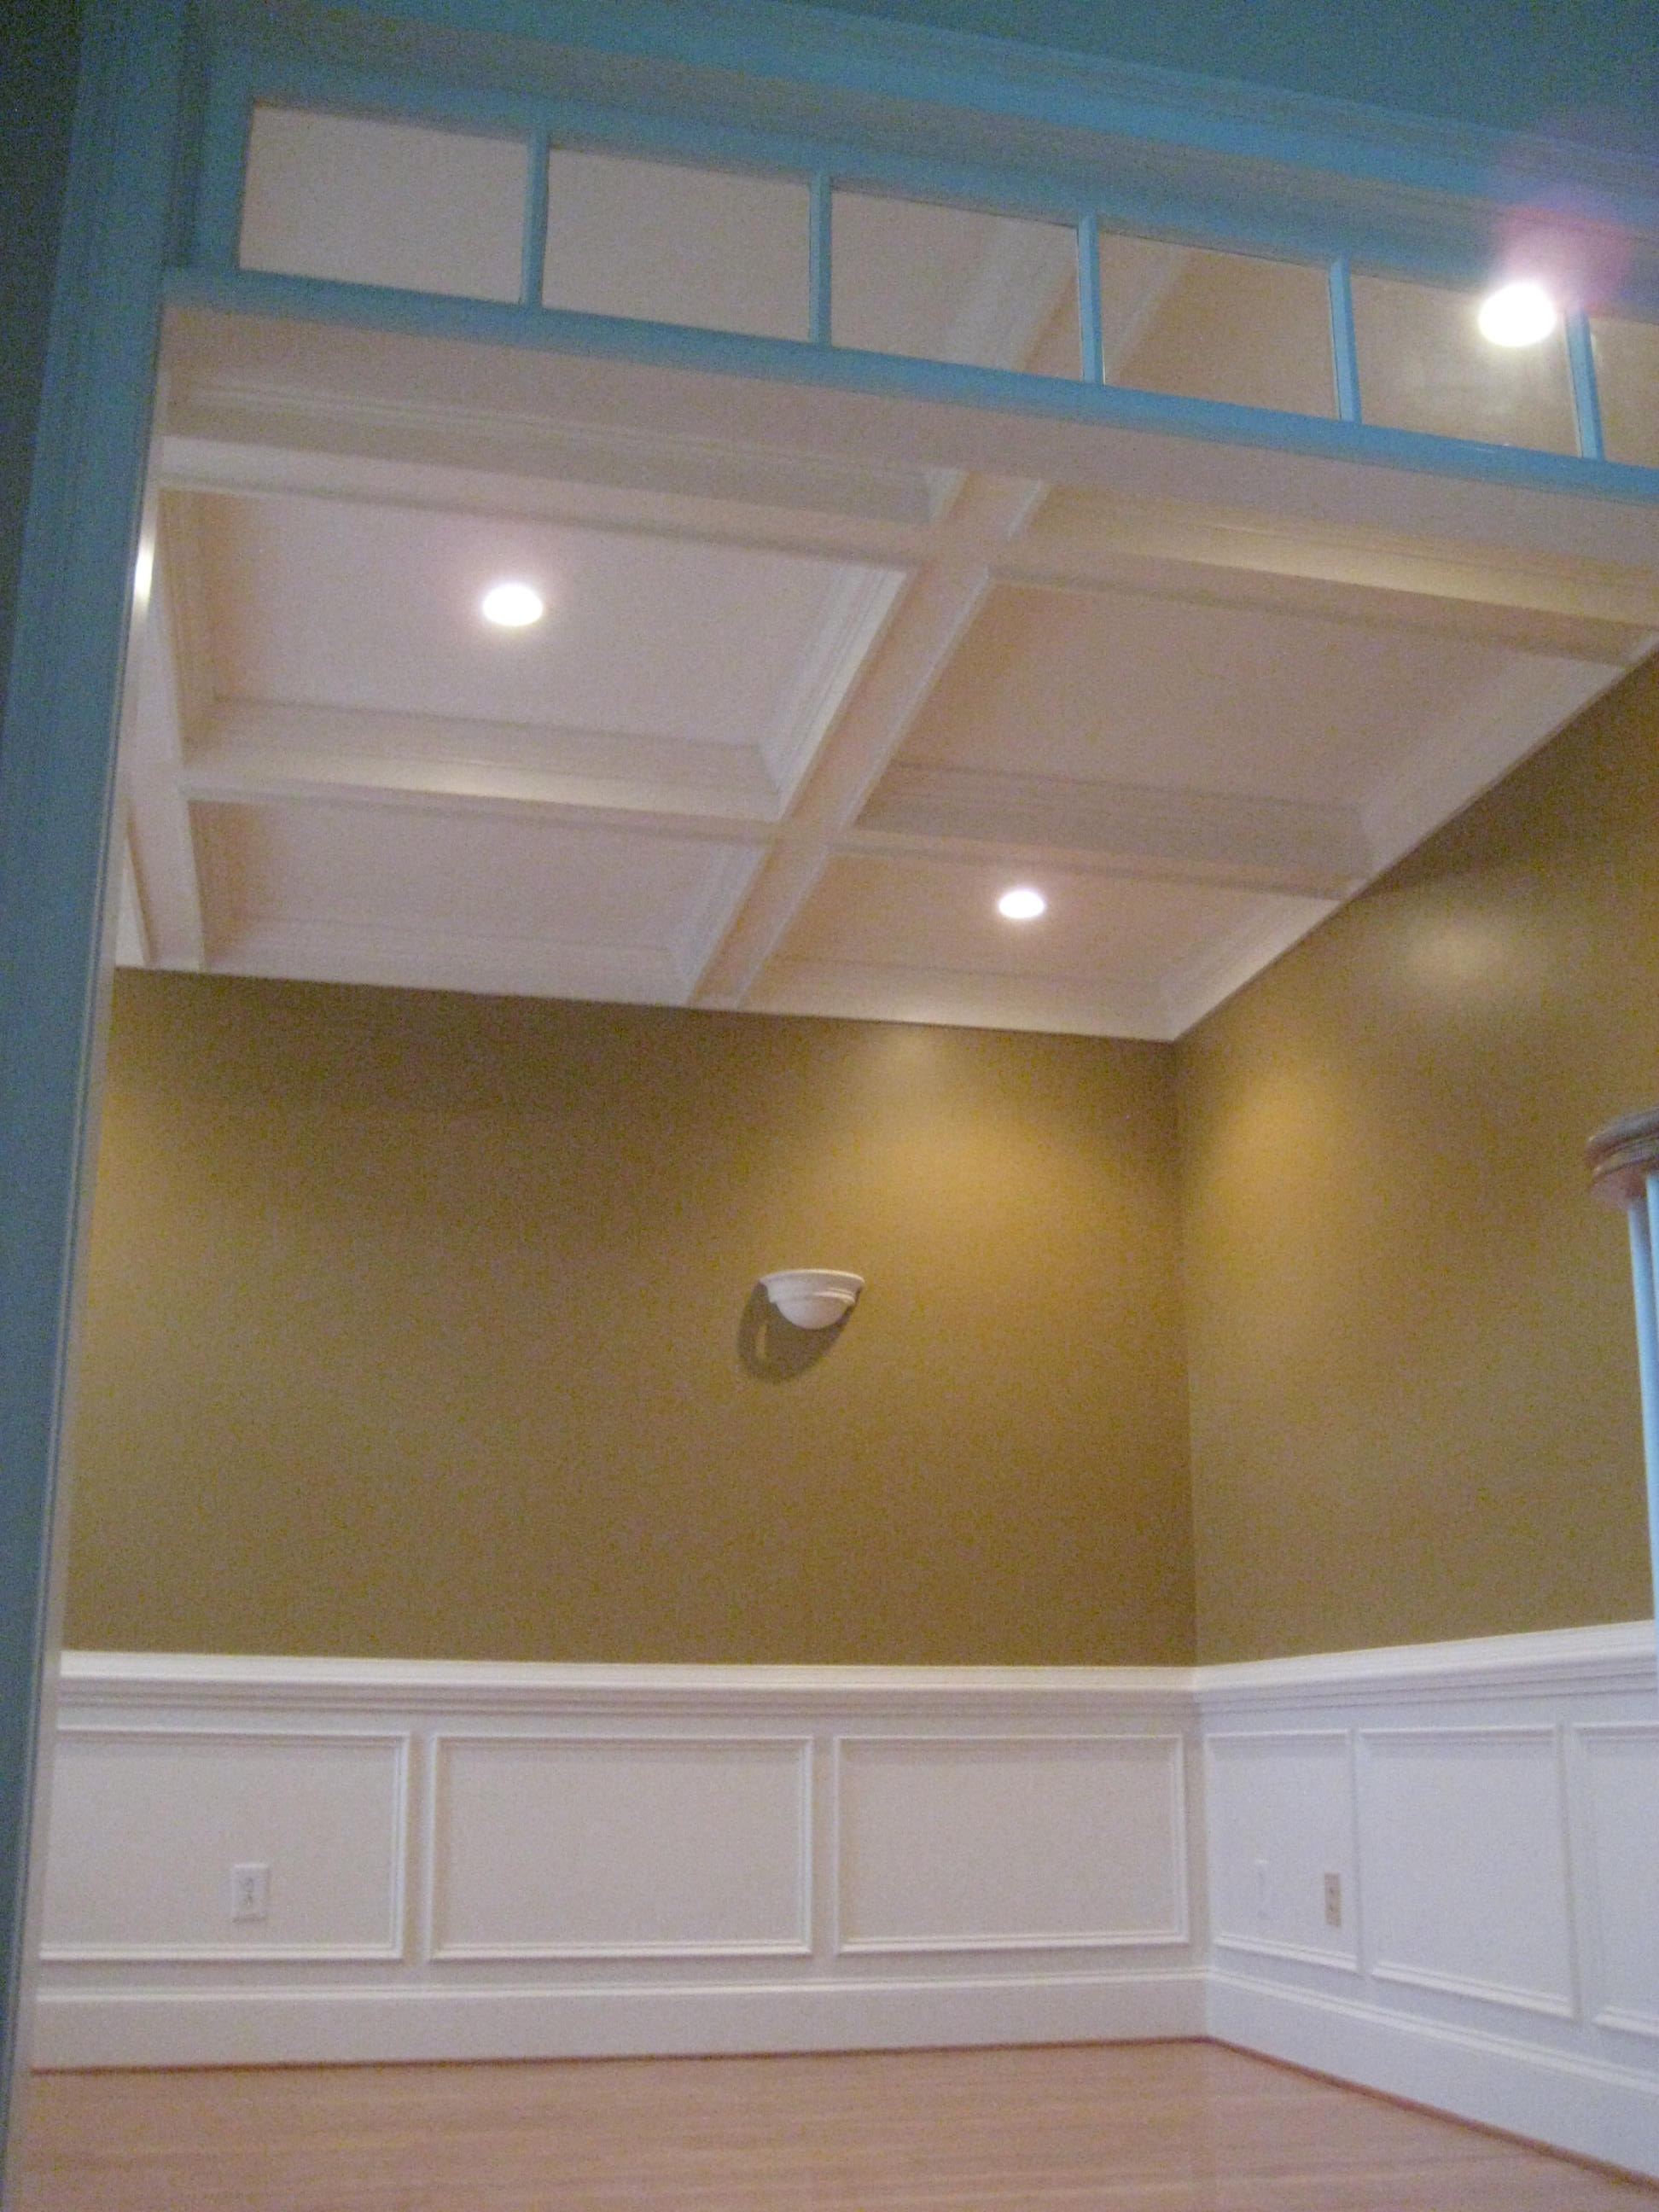 Remodel Living Room wall light sconces enhance coffered ceiling.